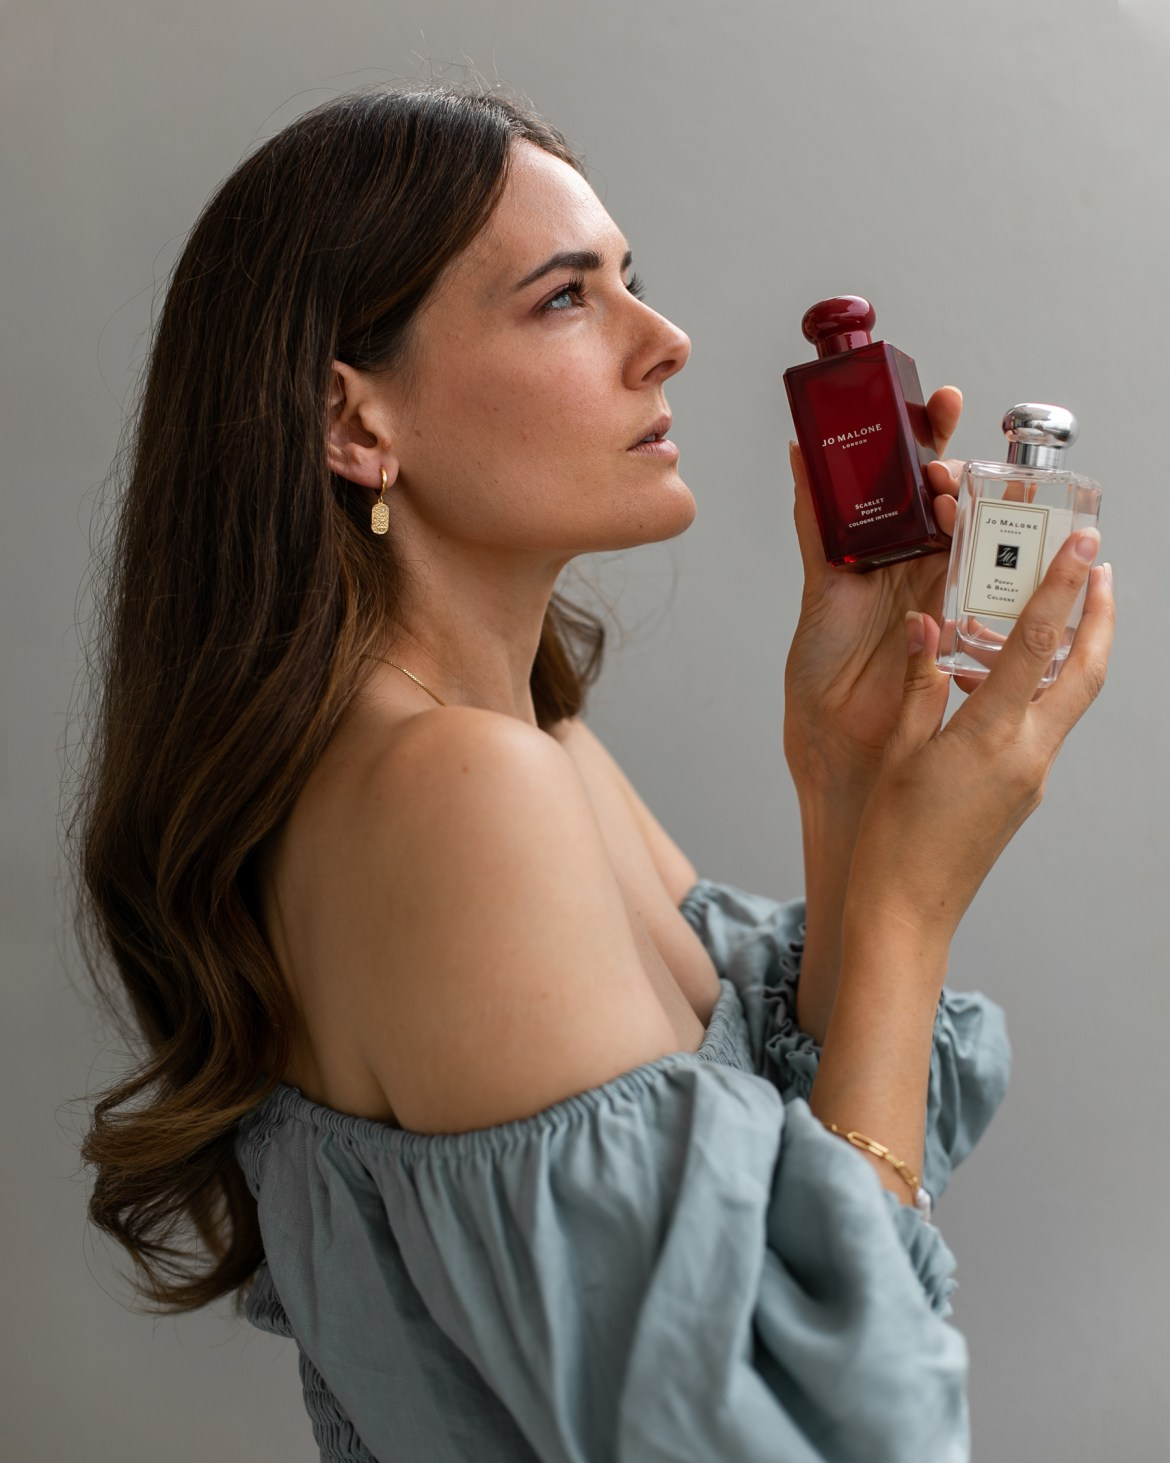 Poppy & Barley by Jo Malone London and the new Scarlet Poppy Cologne Intense for Valentine's day